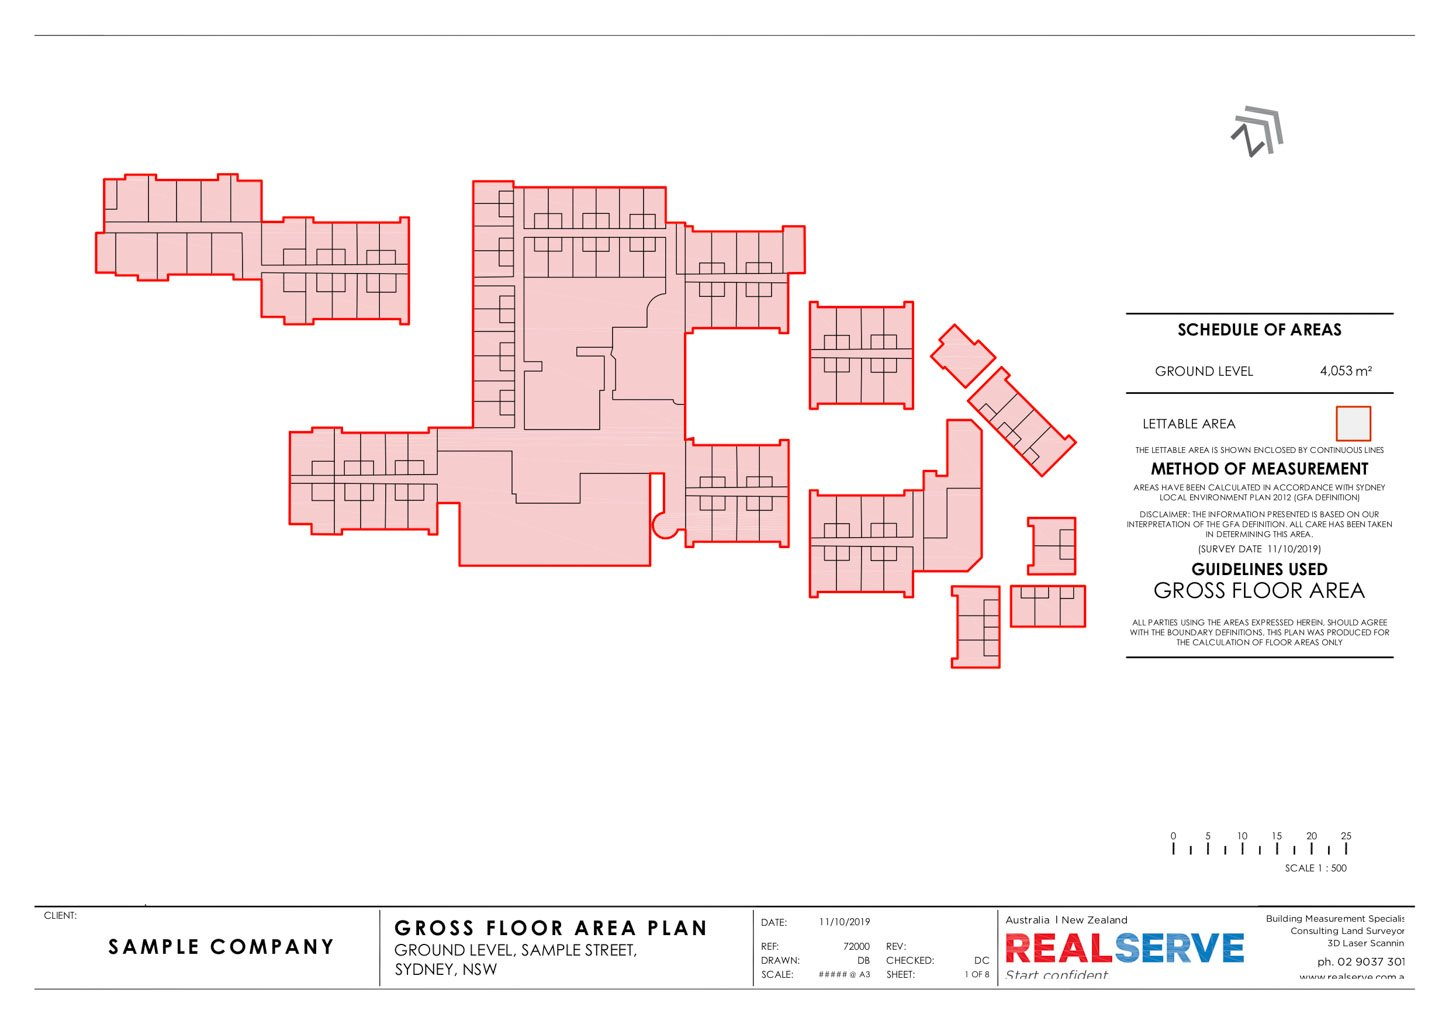 REALSERVE GROSS FLOOR AREA SURVEY SAMPLE OF A BUILDING SECTIONS